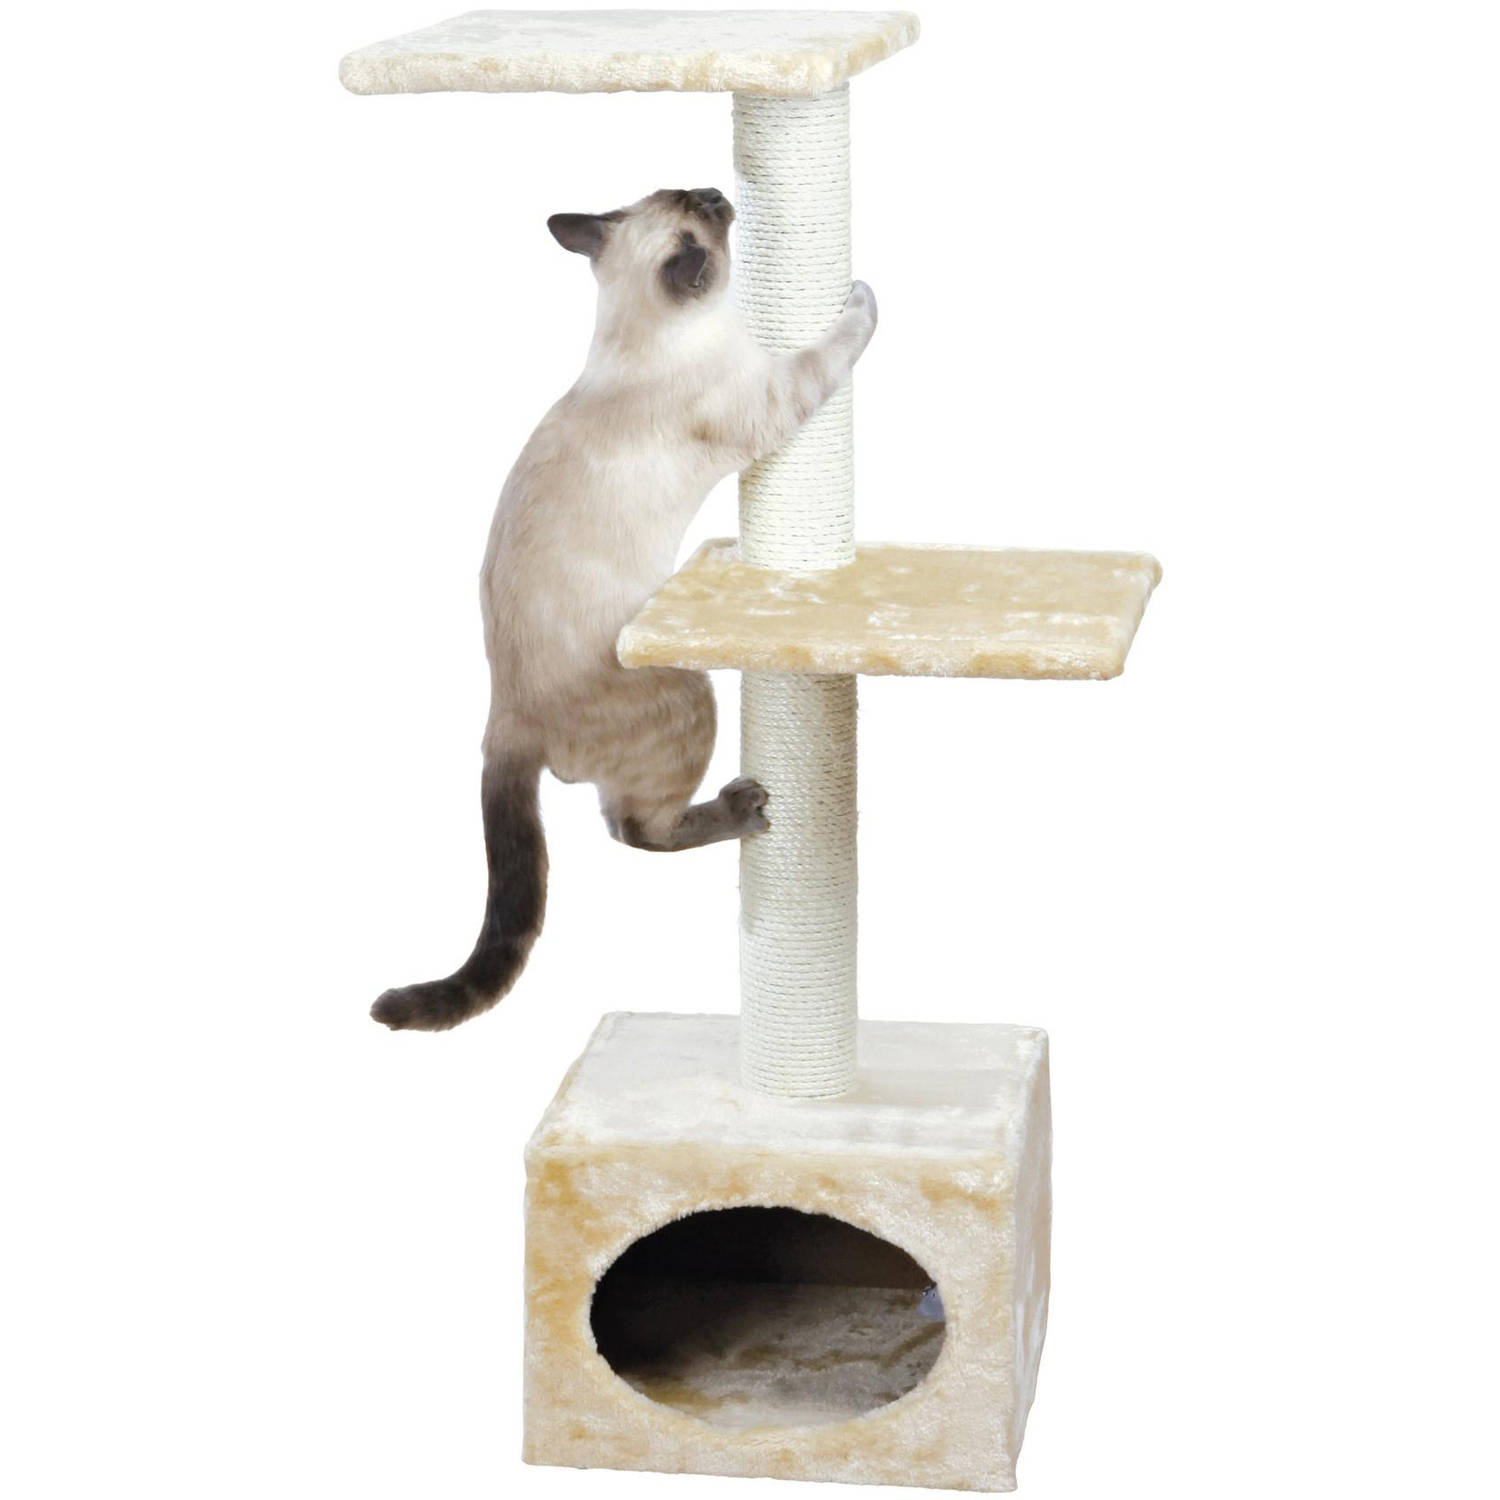 TRIXIE Pet Products, Inc. Trixie Pet Products Badalona Cat Tree, Brown